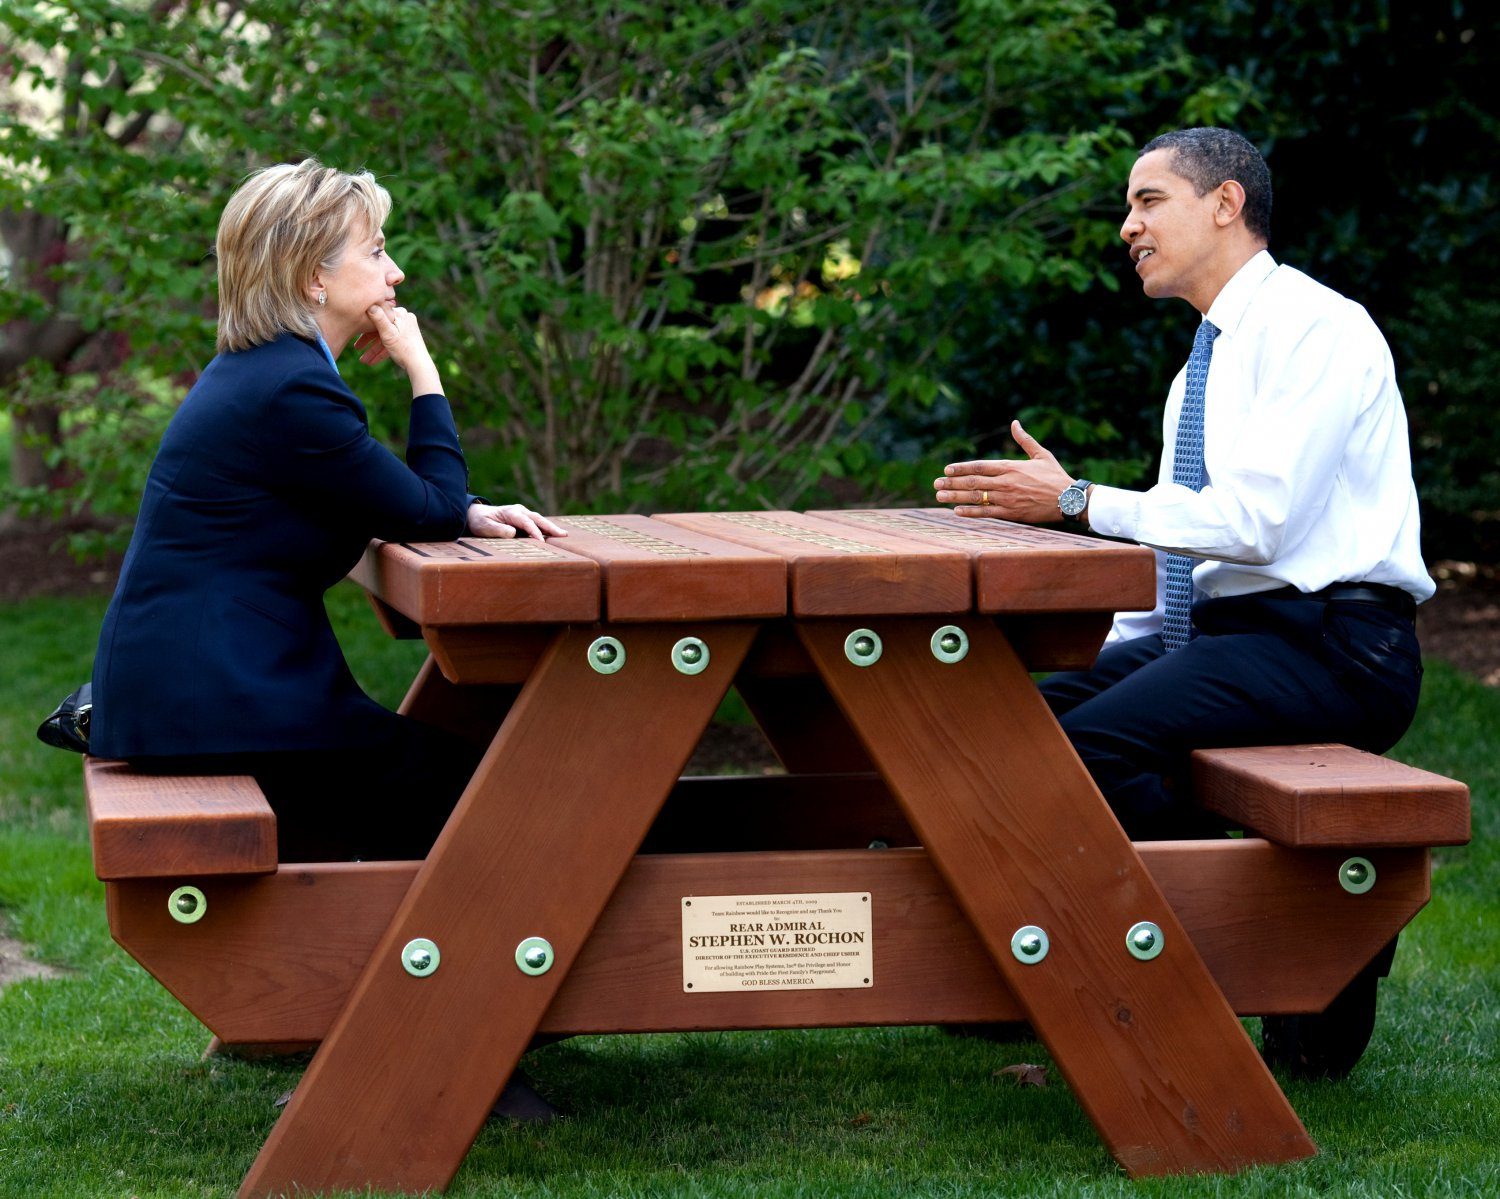 PRESIDENT BARACK OBAMA AND HILLARY CLINTON IN 2009 - 8X10 PHOTO (ZY-256)